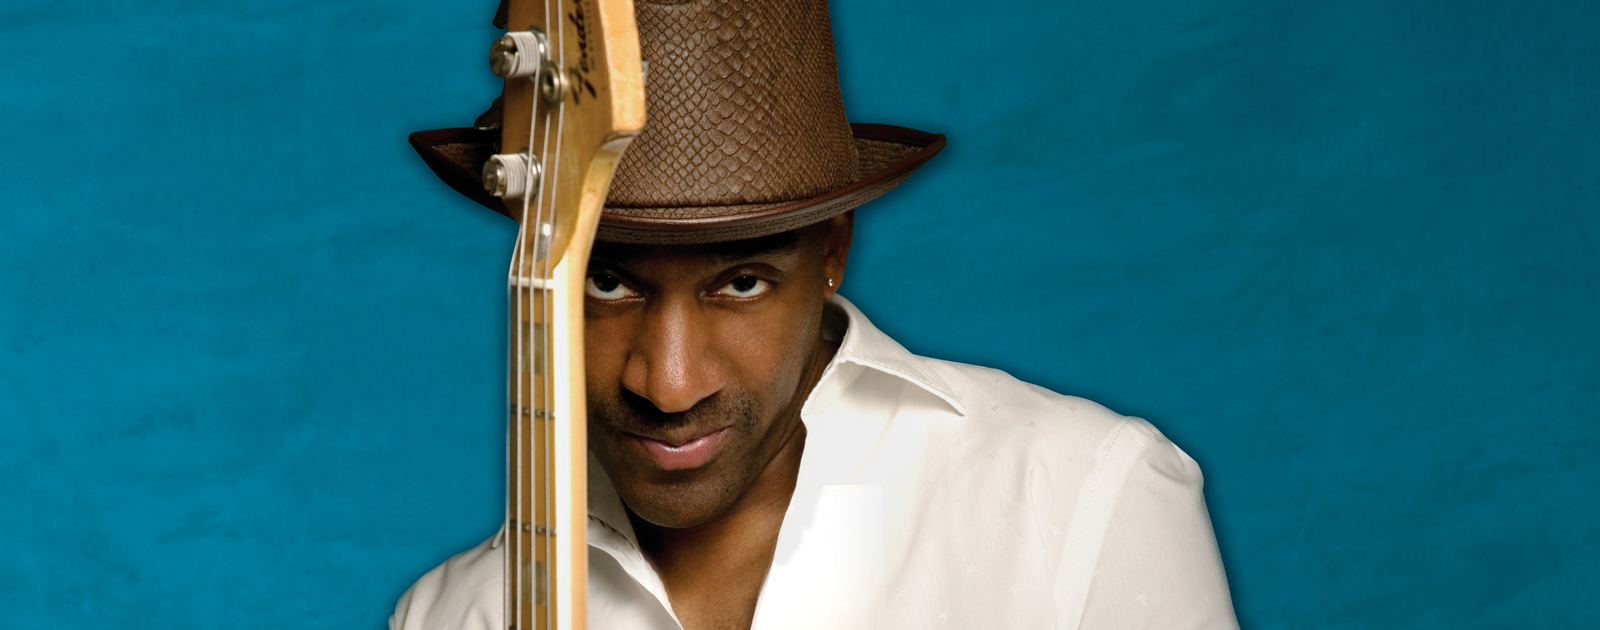 Marcus Miller with a guitar